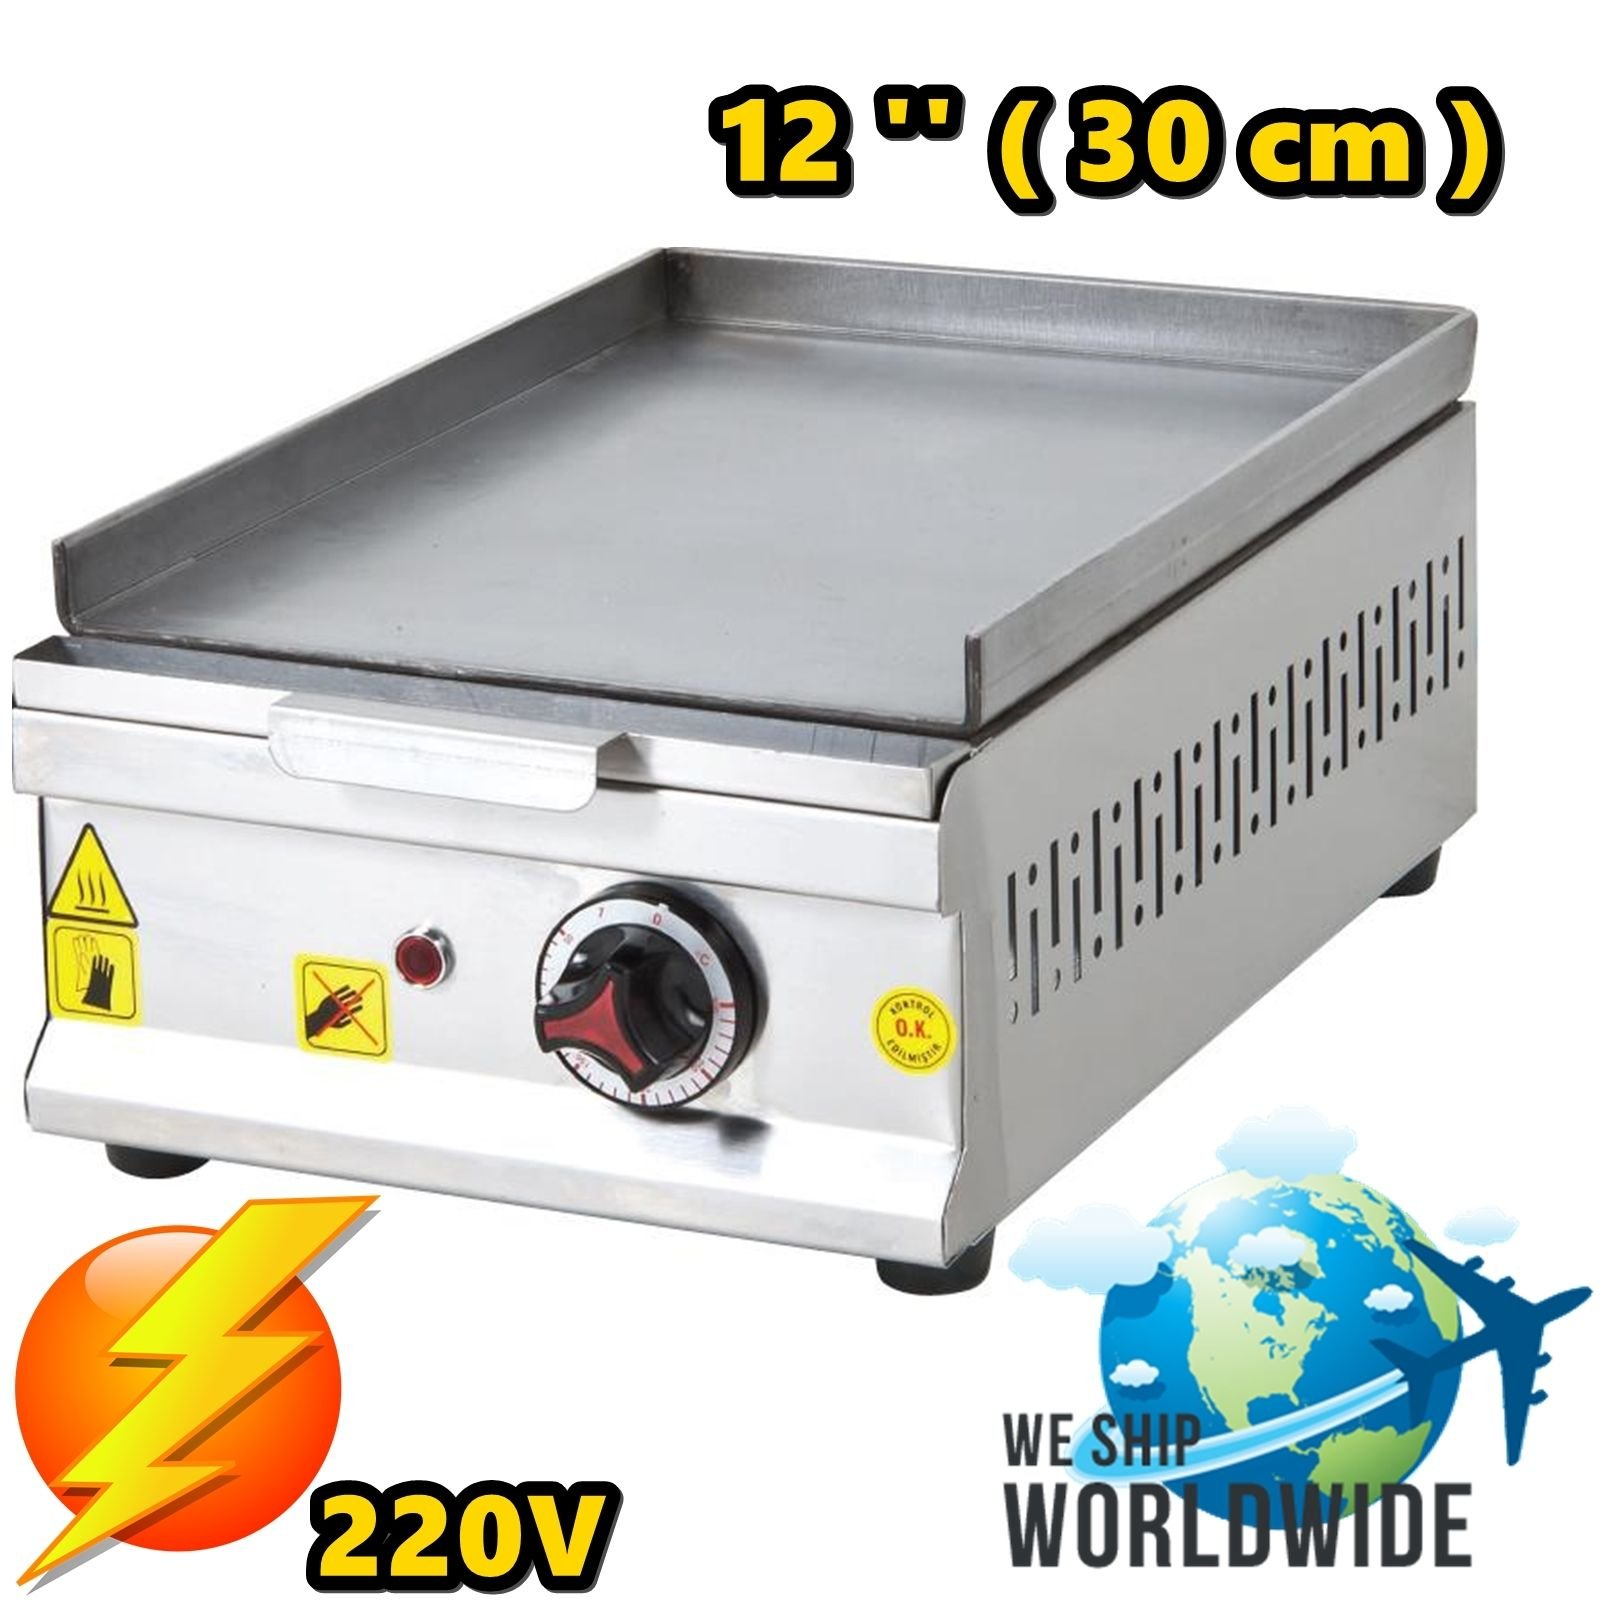 12 '' ( 30 cm ) ELECTRIC Commercial Kitchen Equipment Countertop Flat Top Restaurant Grill Stove Cooktop Manual Griddle 220V